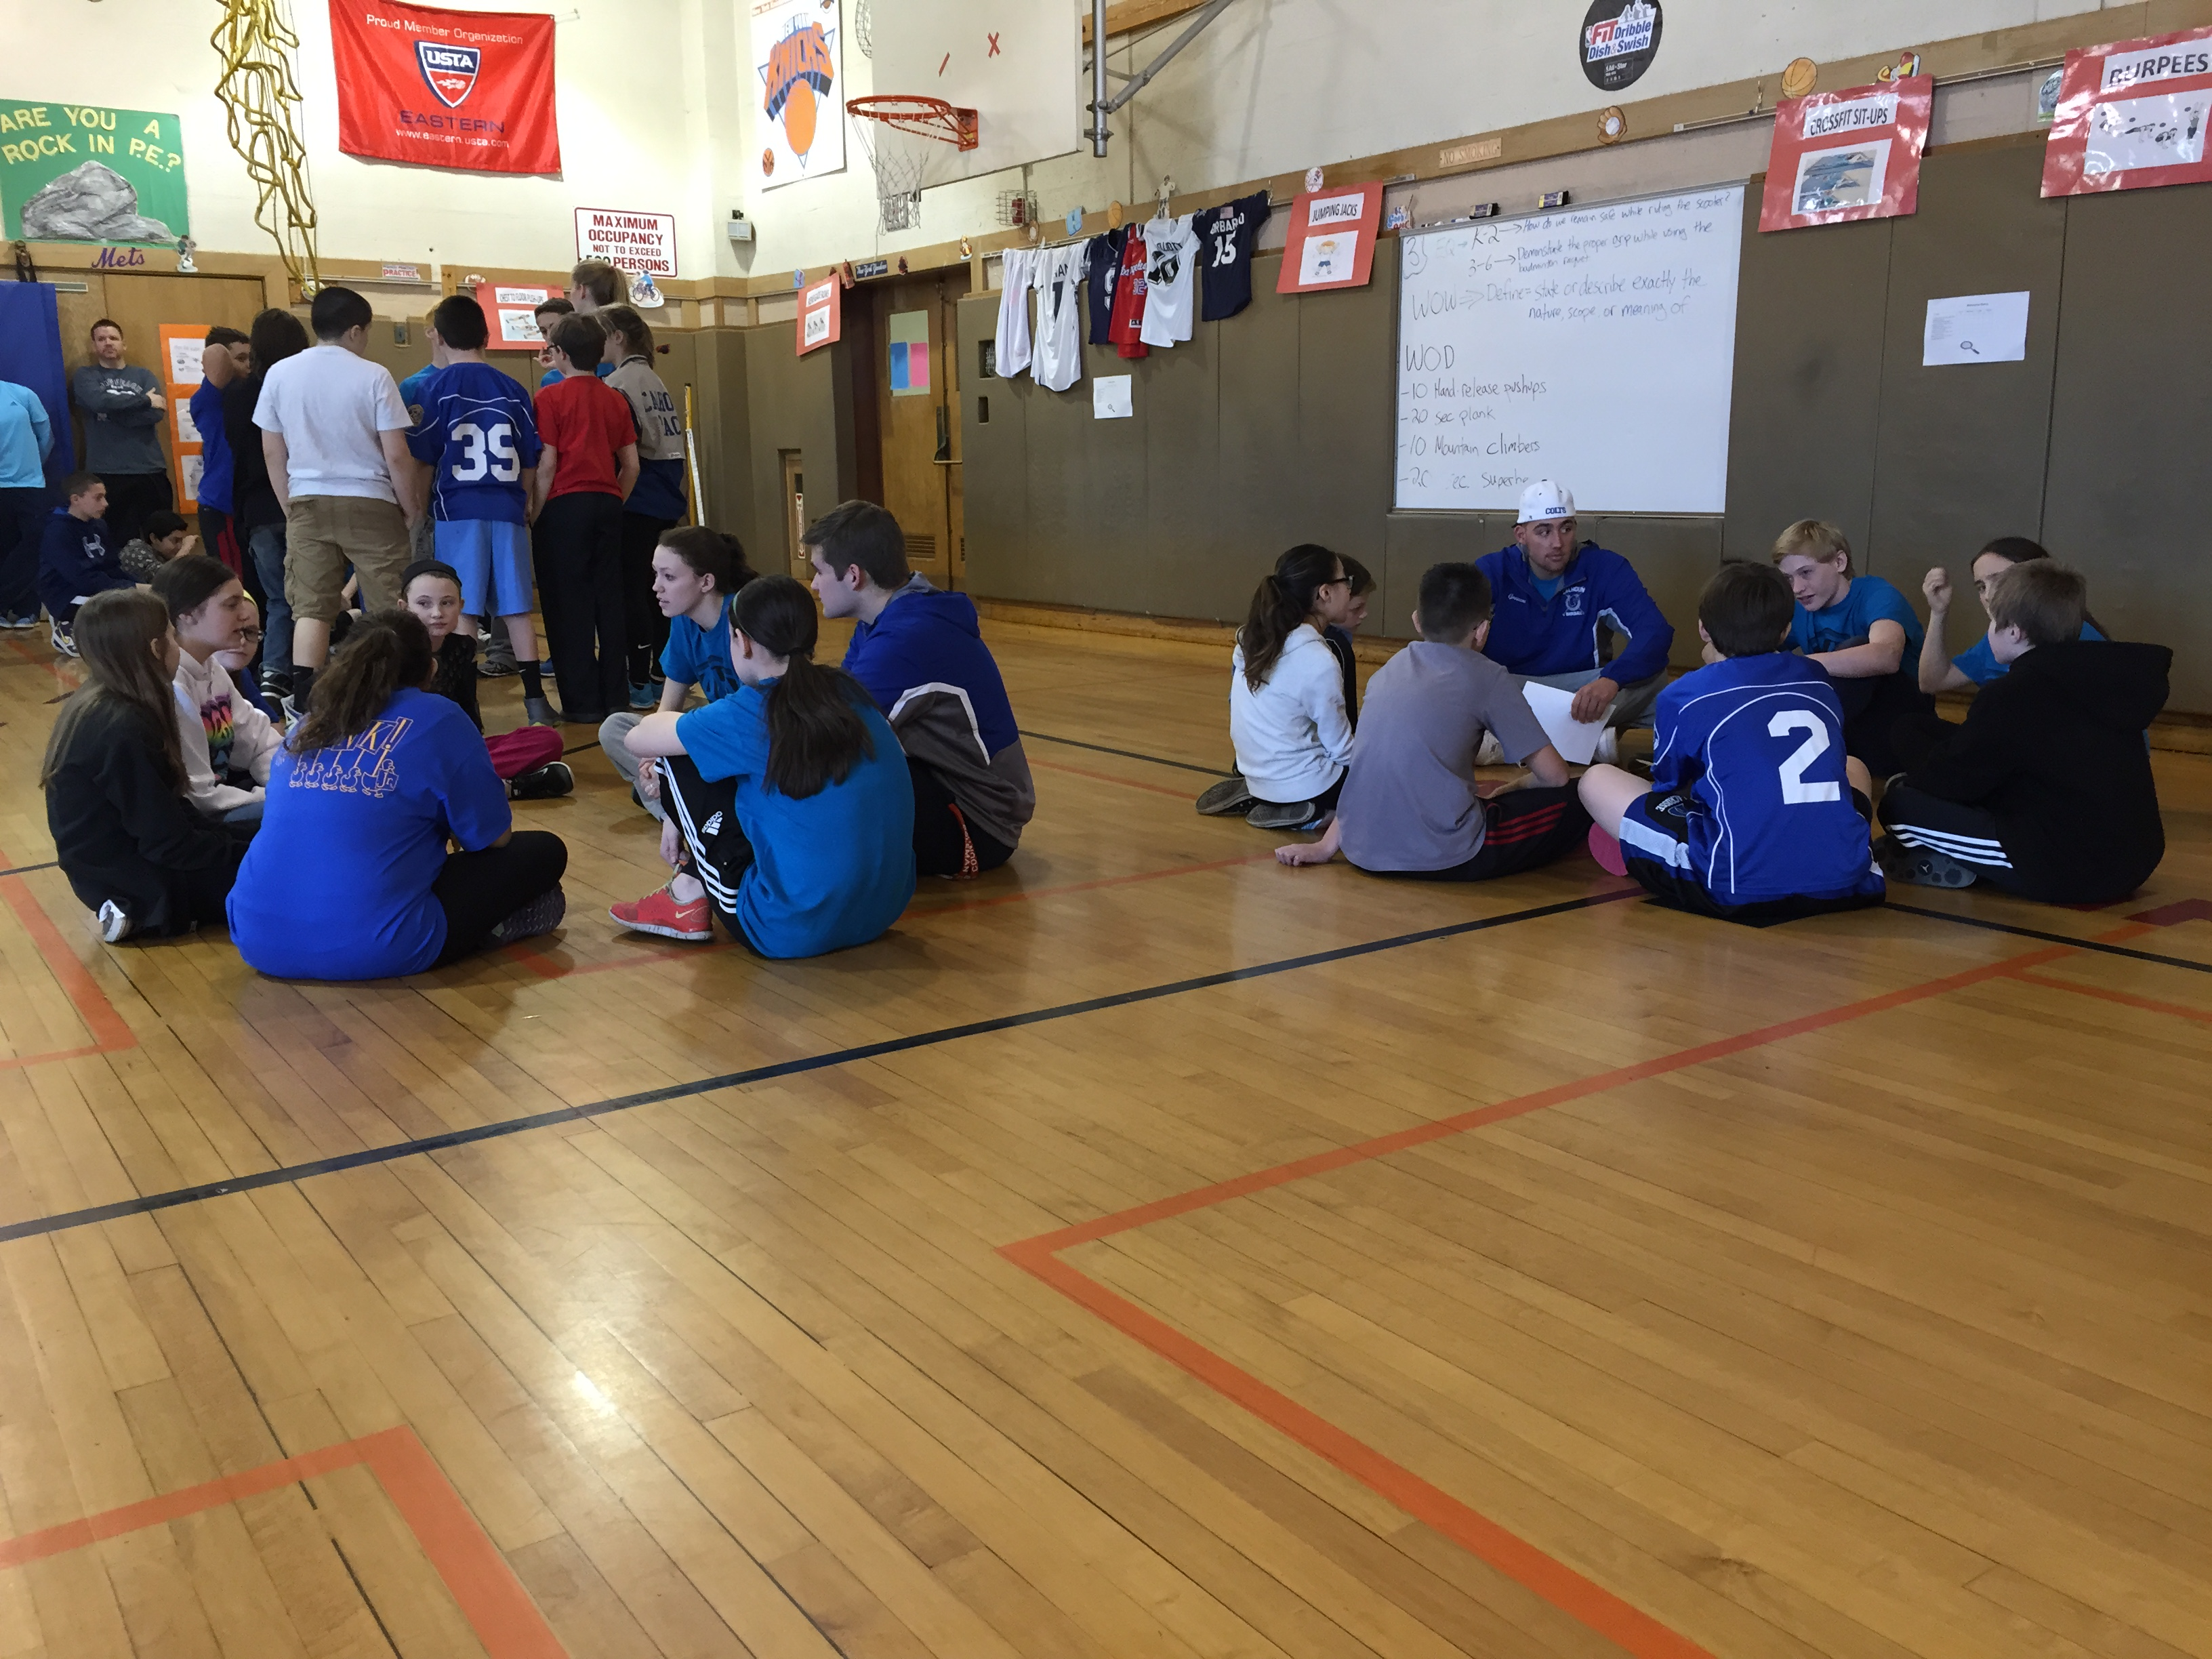 Student Athlete Leaders and Students Solving Scenarios